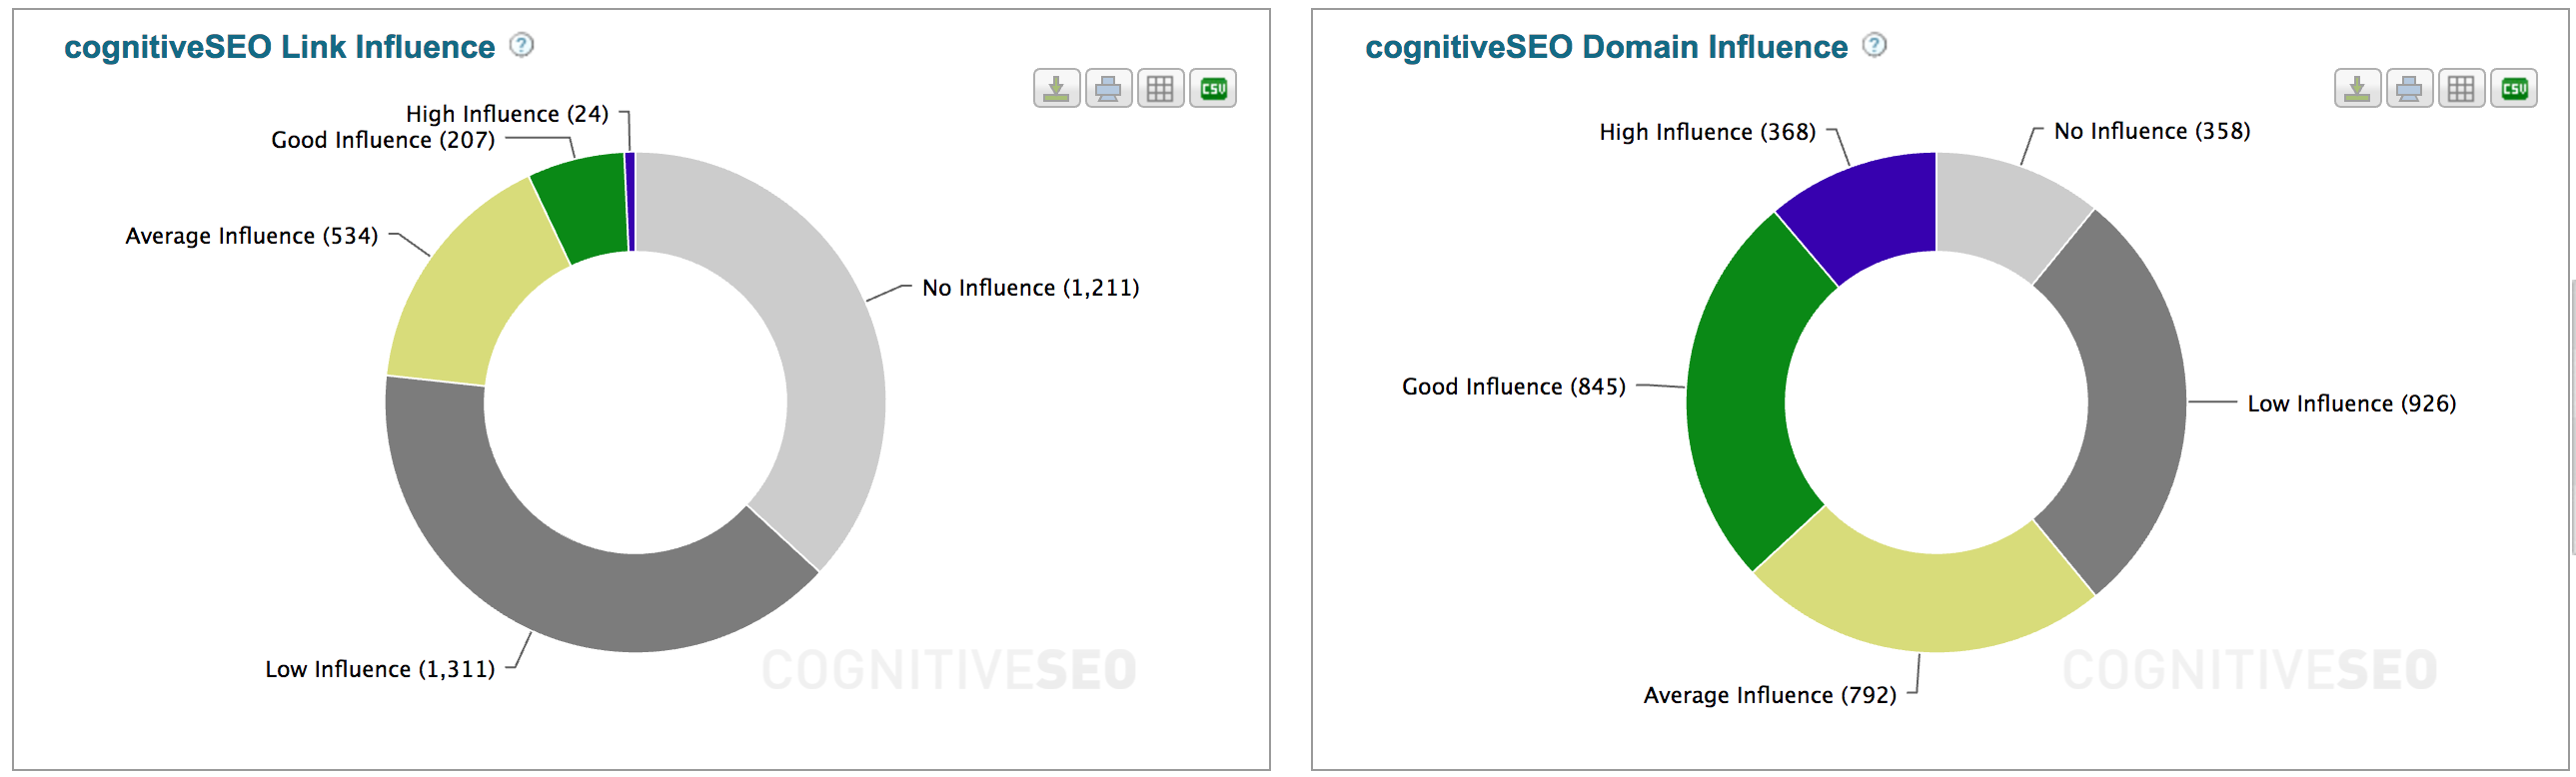 link-domain-influence.png